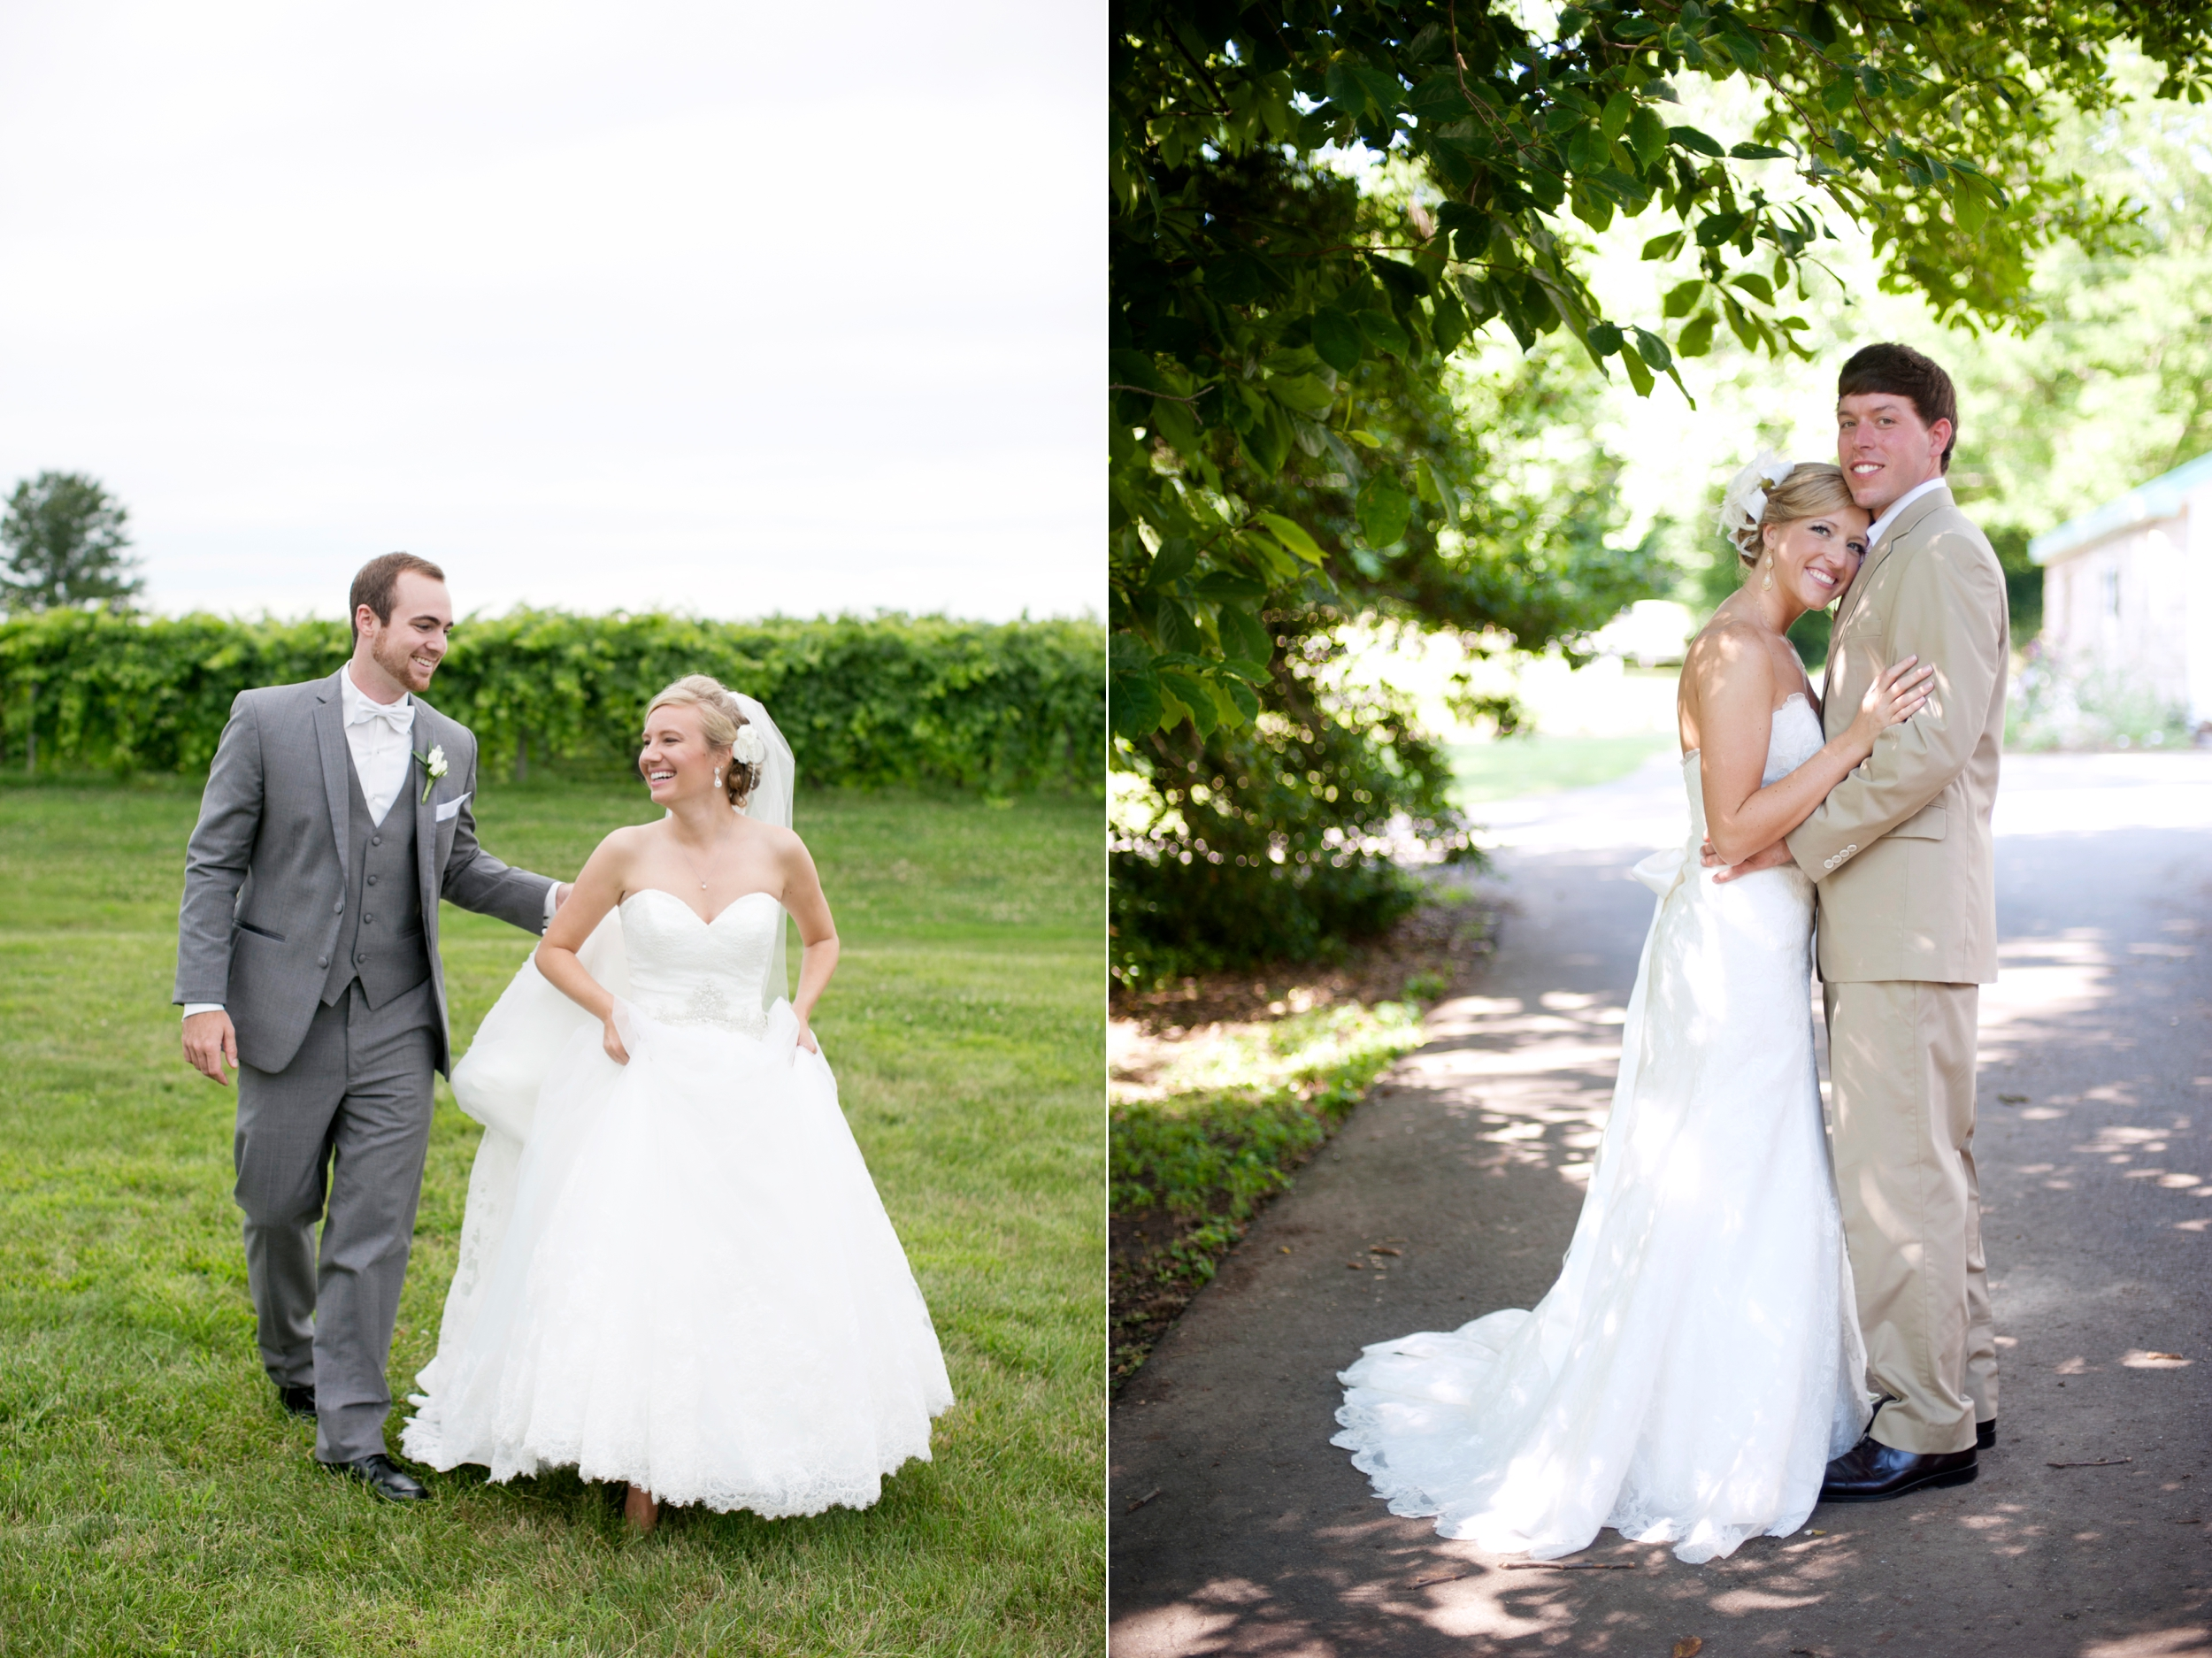 48-kentucky-vineyard-outdoor-wedding.JPG